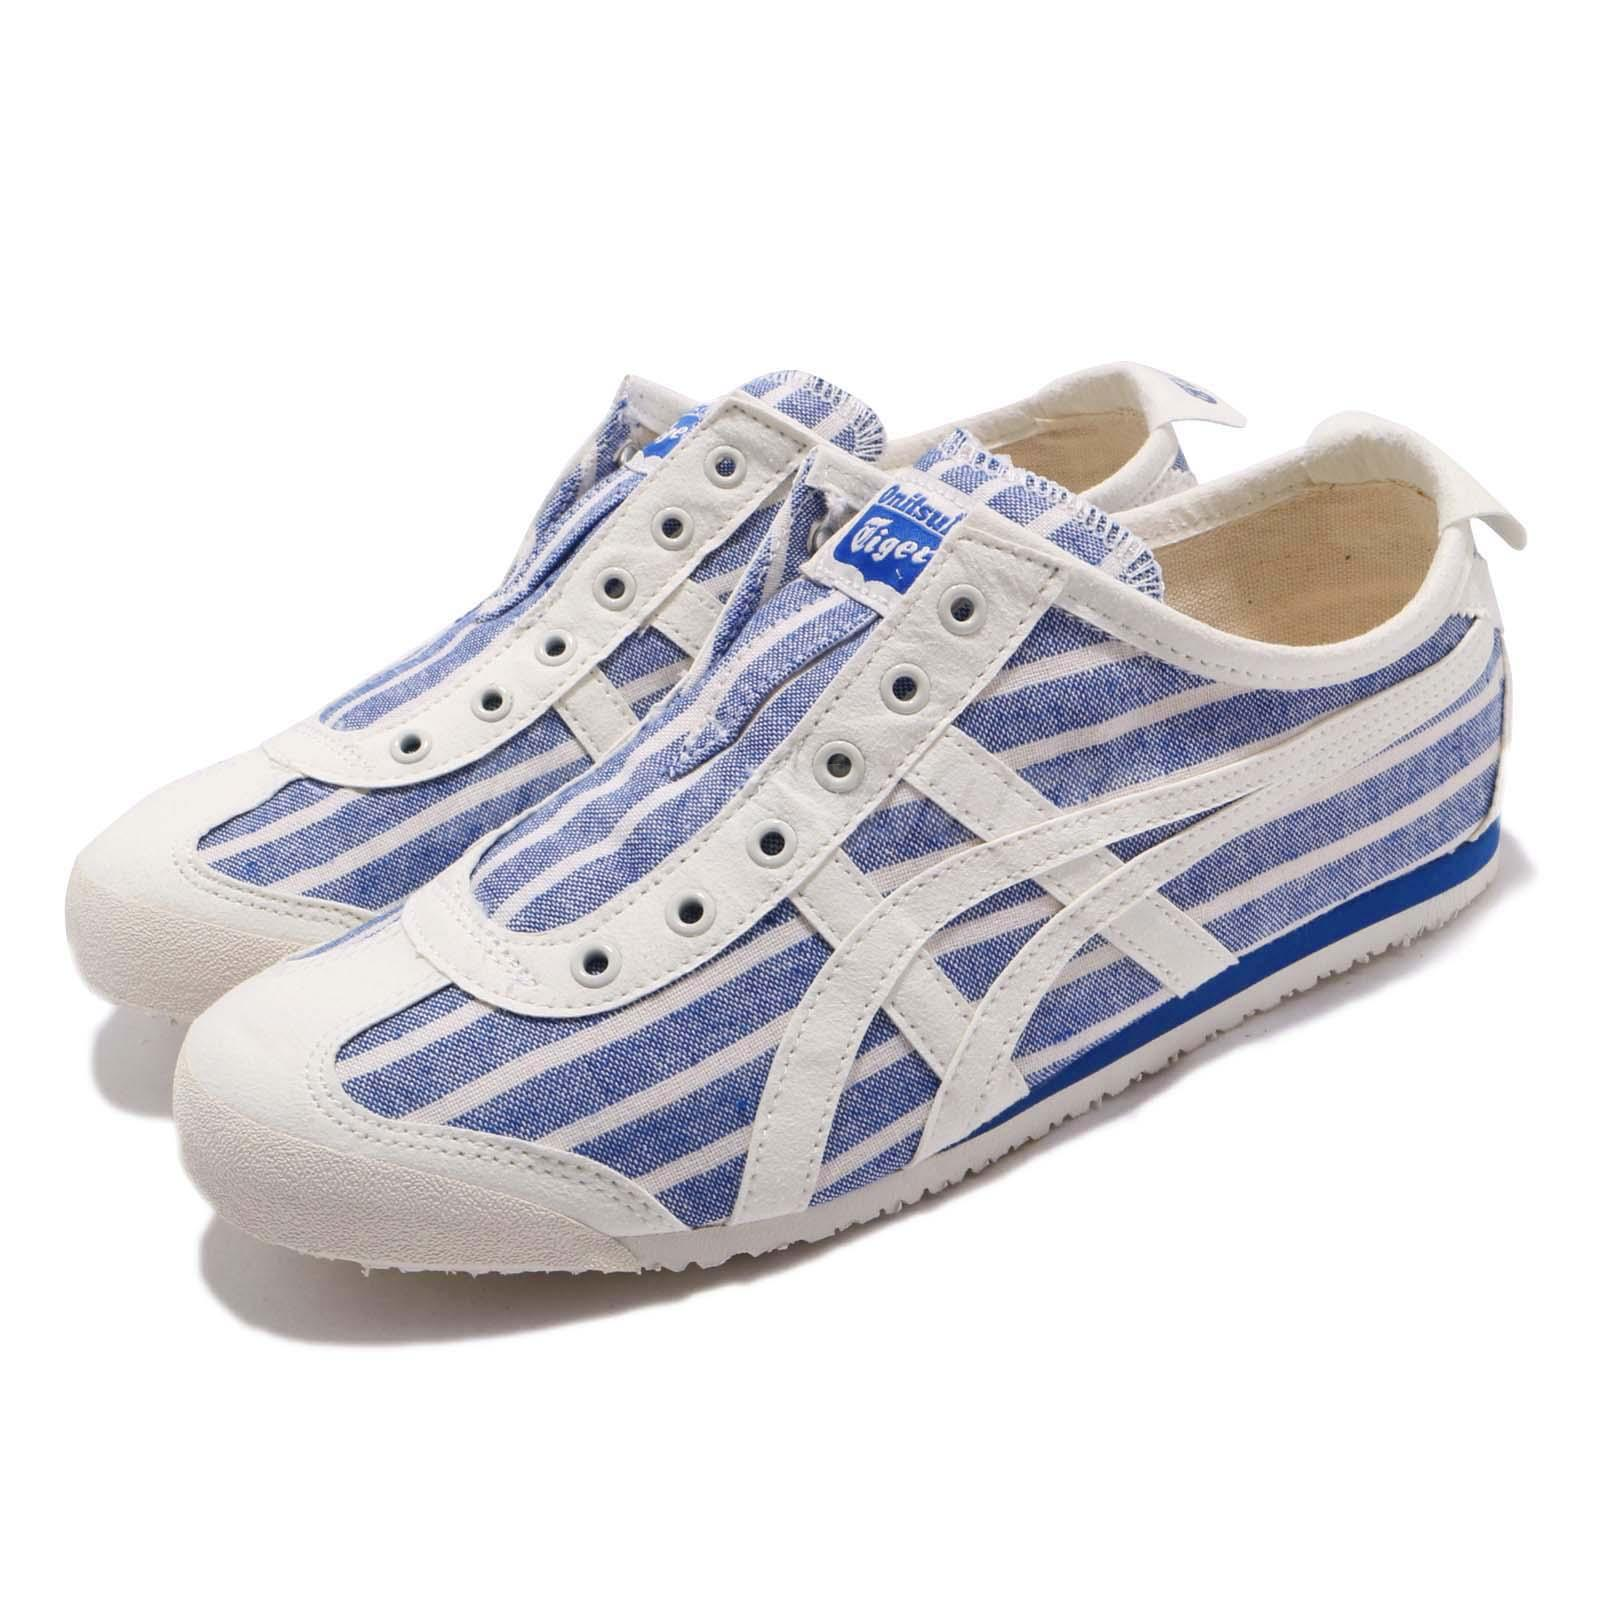 differently 23646 c1a27 Details about Asics Onitsuka Tiger Mexico 66 Slip On Blue Cream Men Women  Shoes 1183A239-401